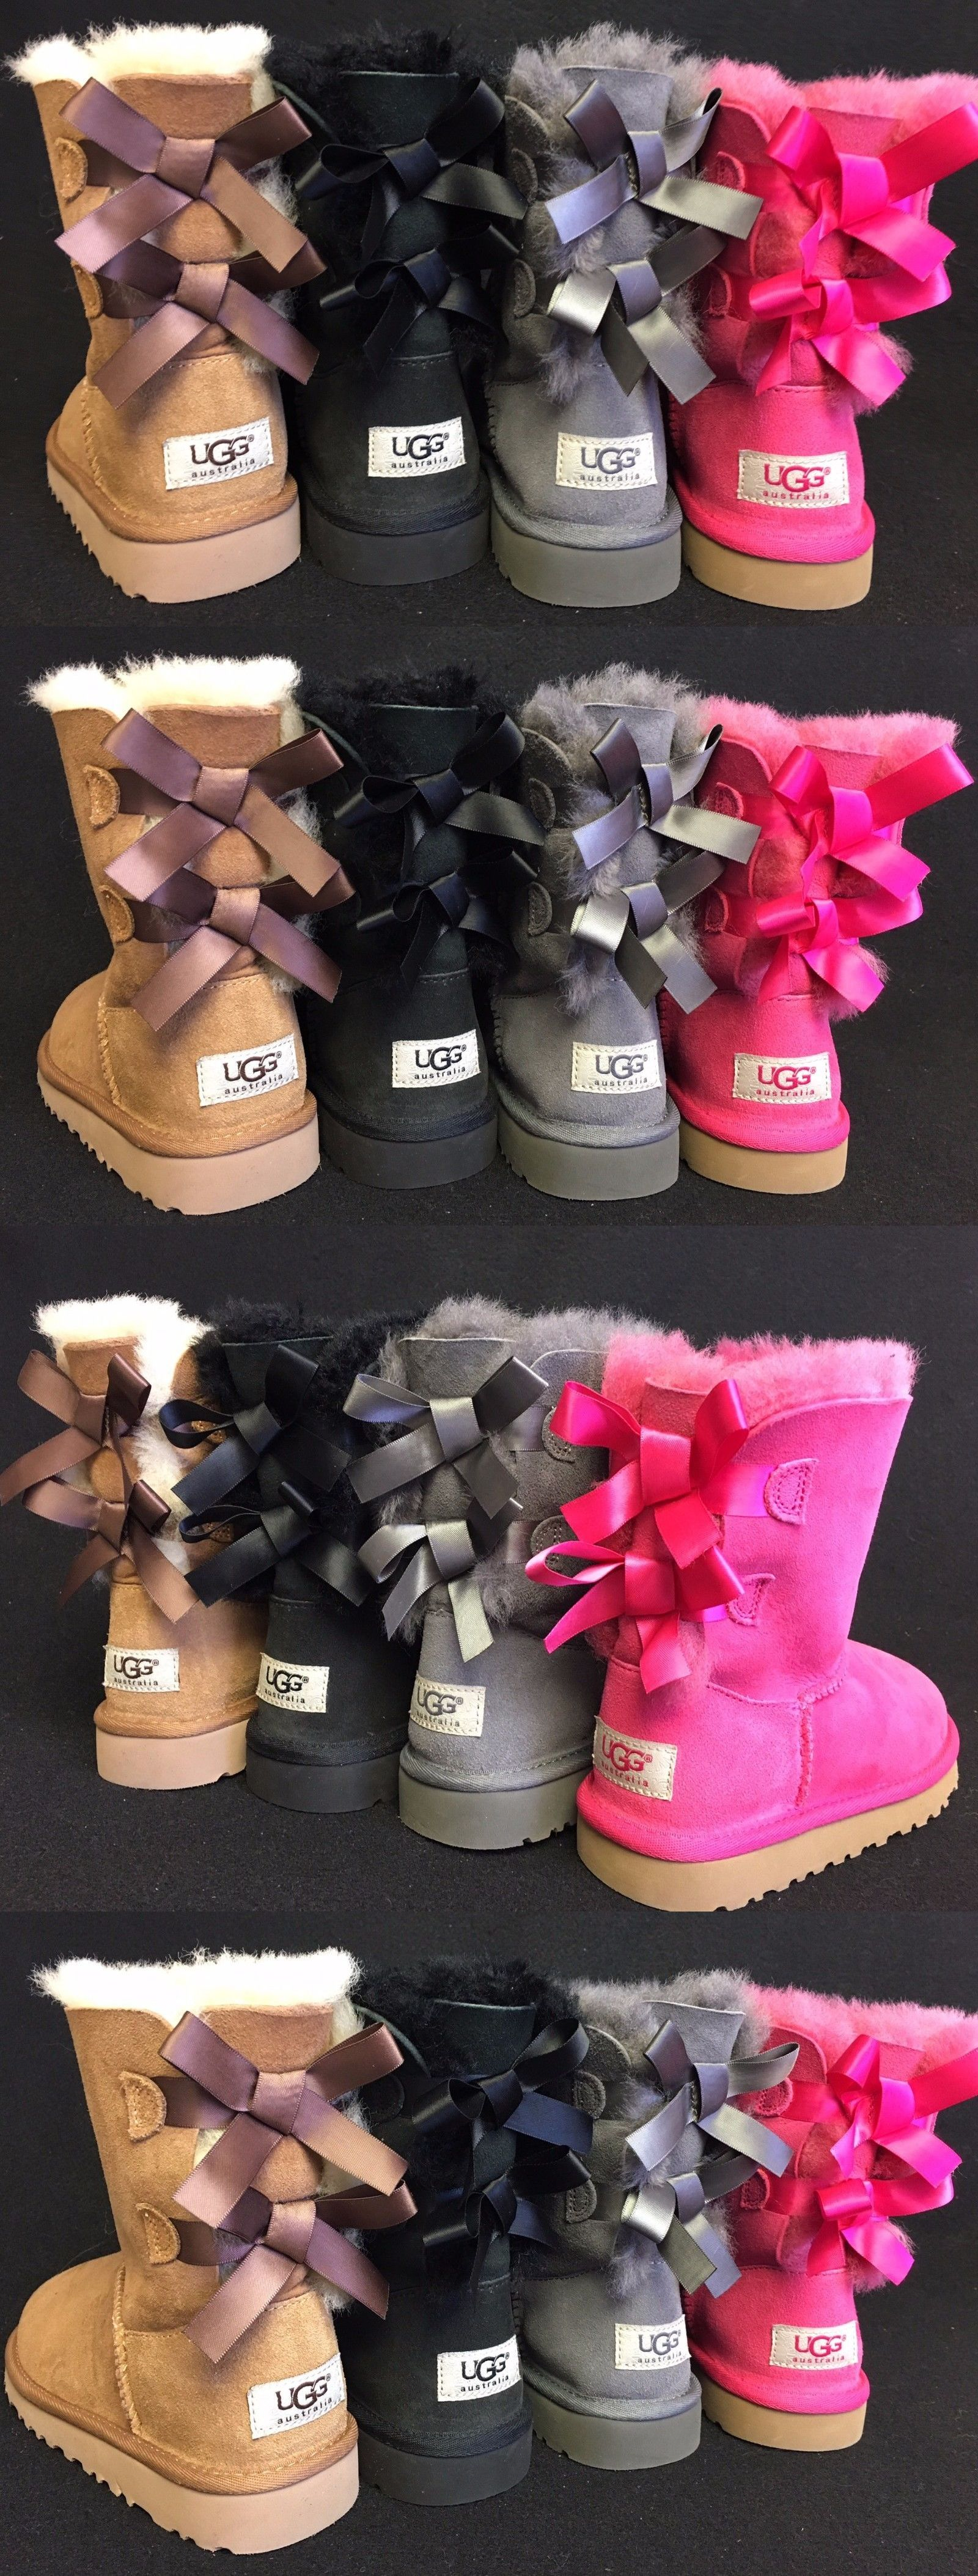 Girls Shoes 57974: Ugg Australia Double Bailey Bow Chestnut 3280 Baby - Big Girls Boots